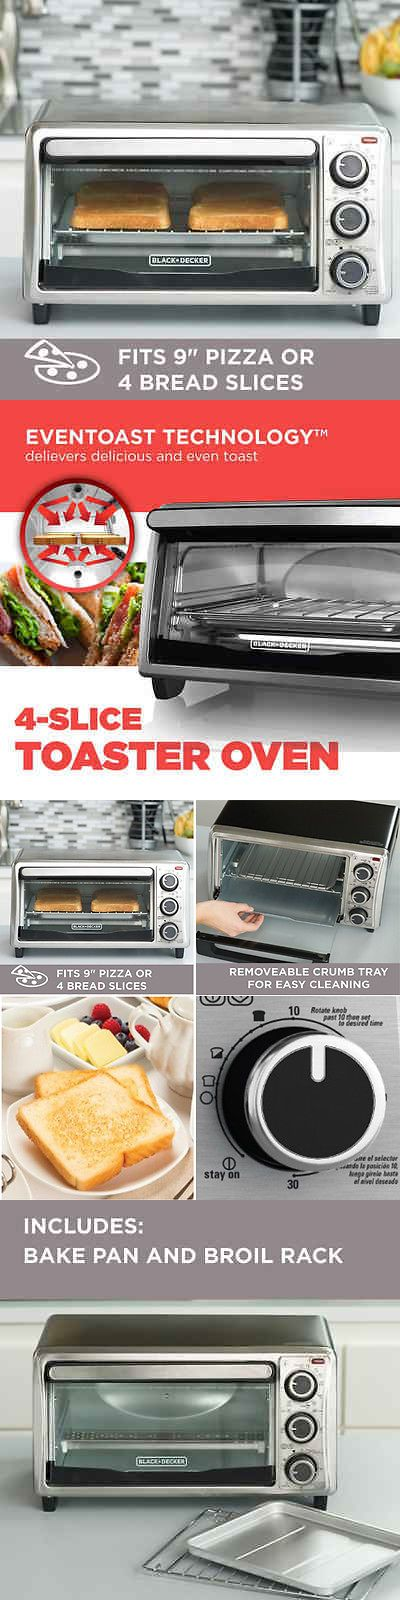 Toaster Ovens 122930: Electric Convection Oven Pizza Toaster Countertop Stainless Steel Black Decker -> BUY IT NOW ONLY: $75.52 on eBay!